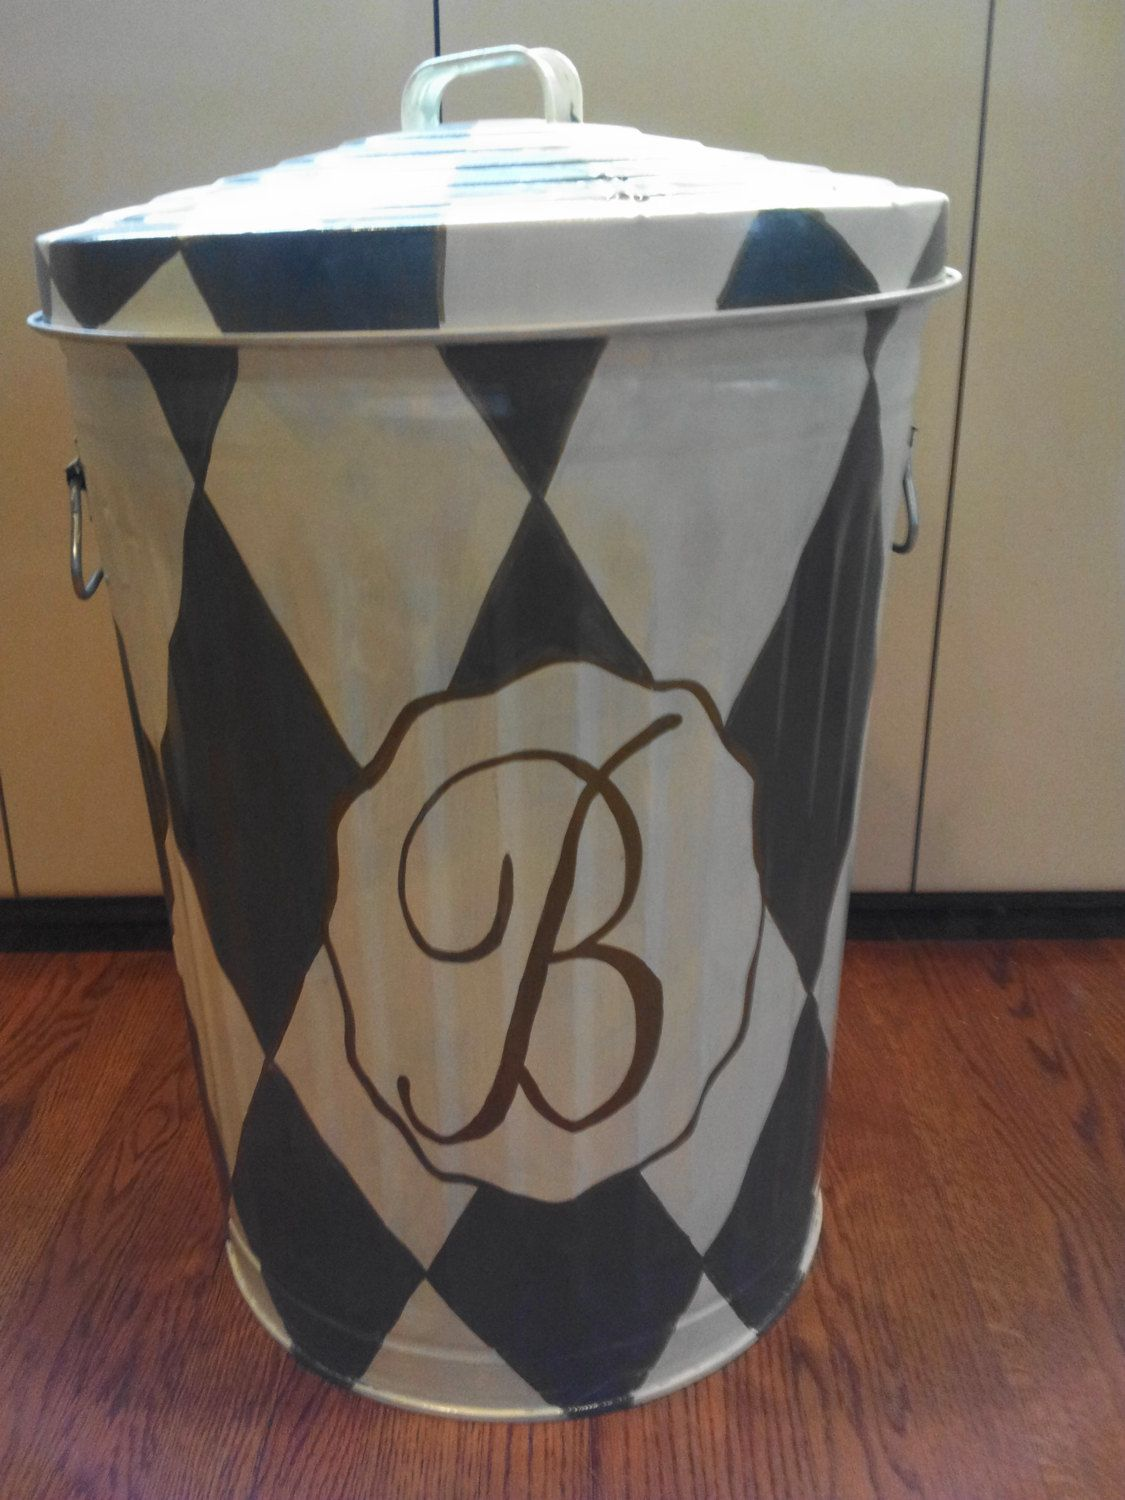 Decorative Metal Waste Baskets Decorative Hand Painted Personalized Monogrammed 20 Gallon